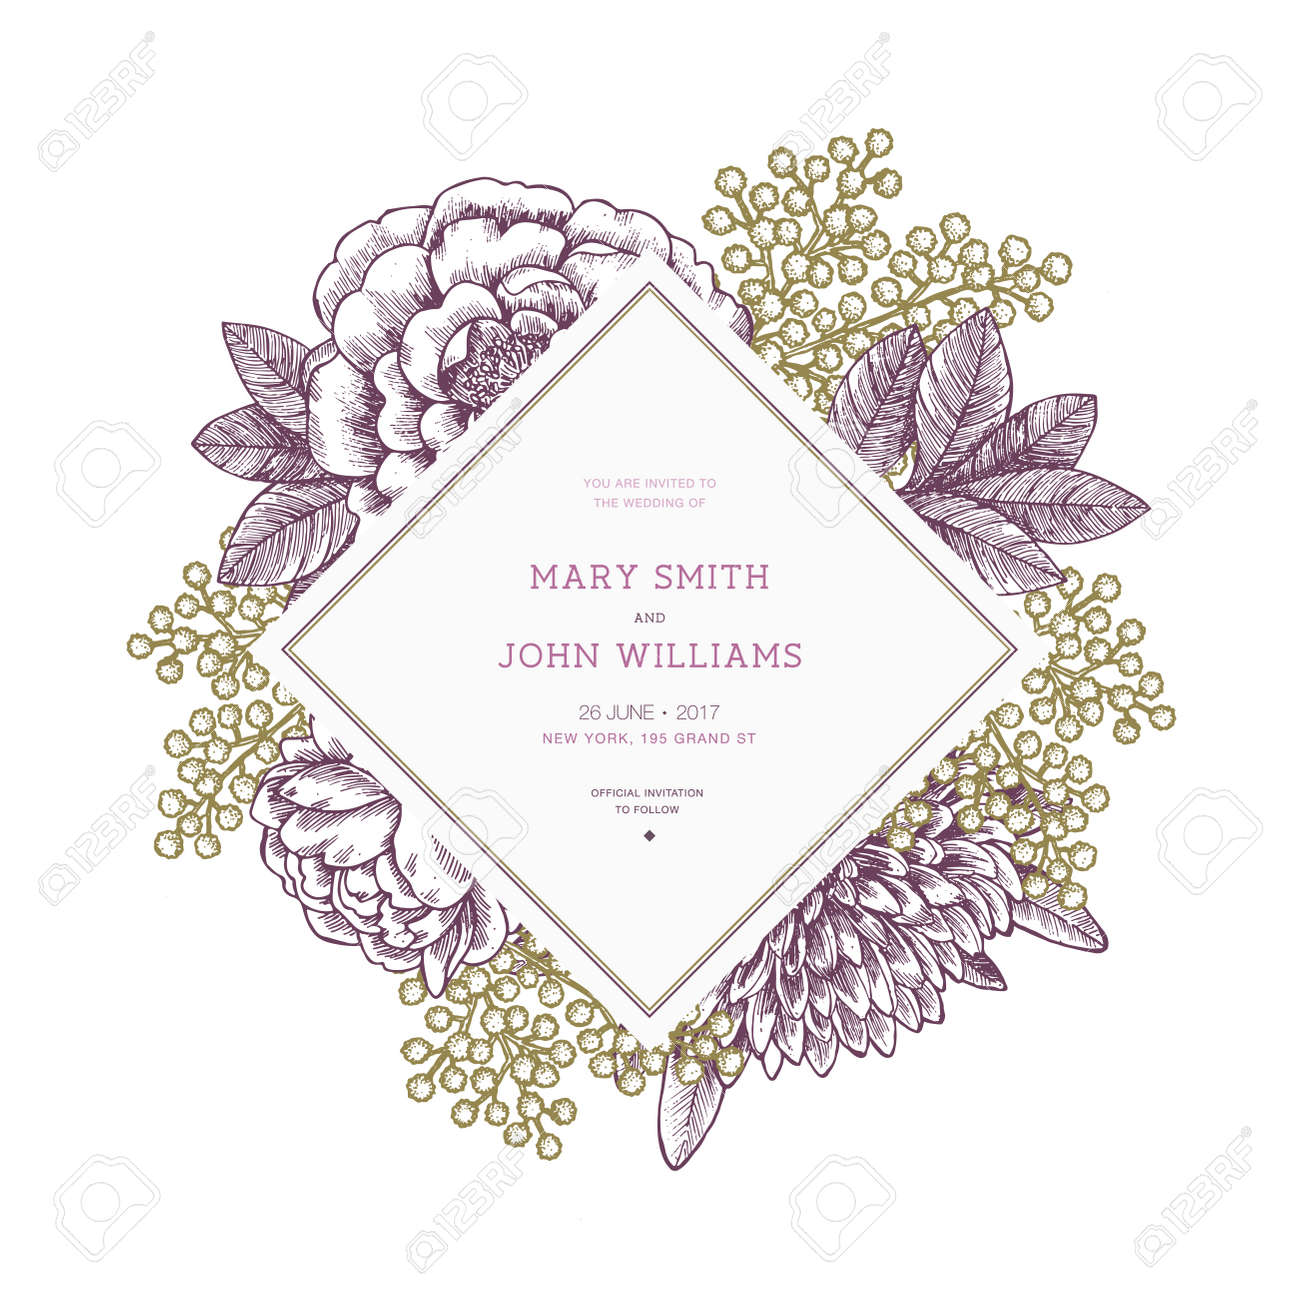 Floral Wedding Invitation Template. Vintage Flower Greeting Card ...